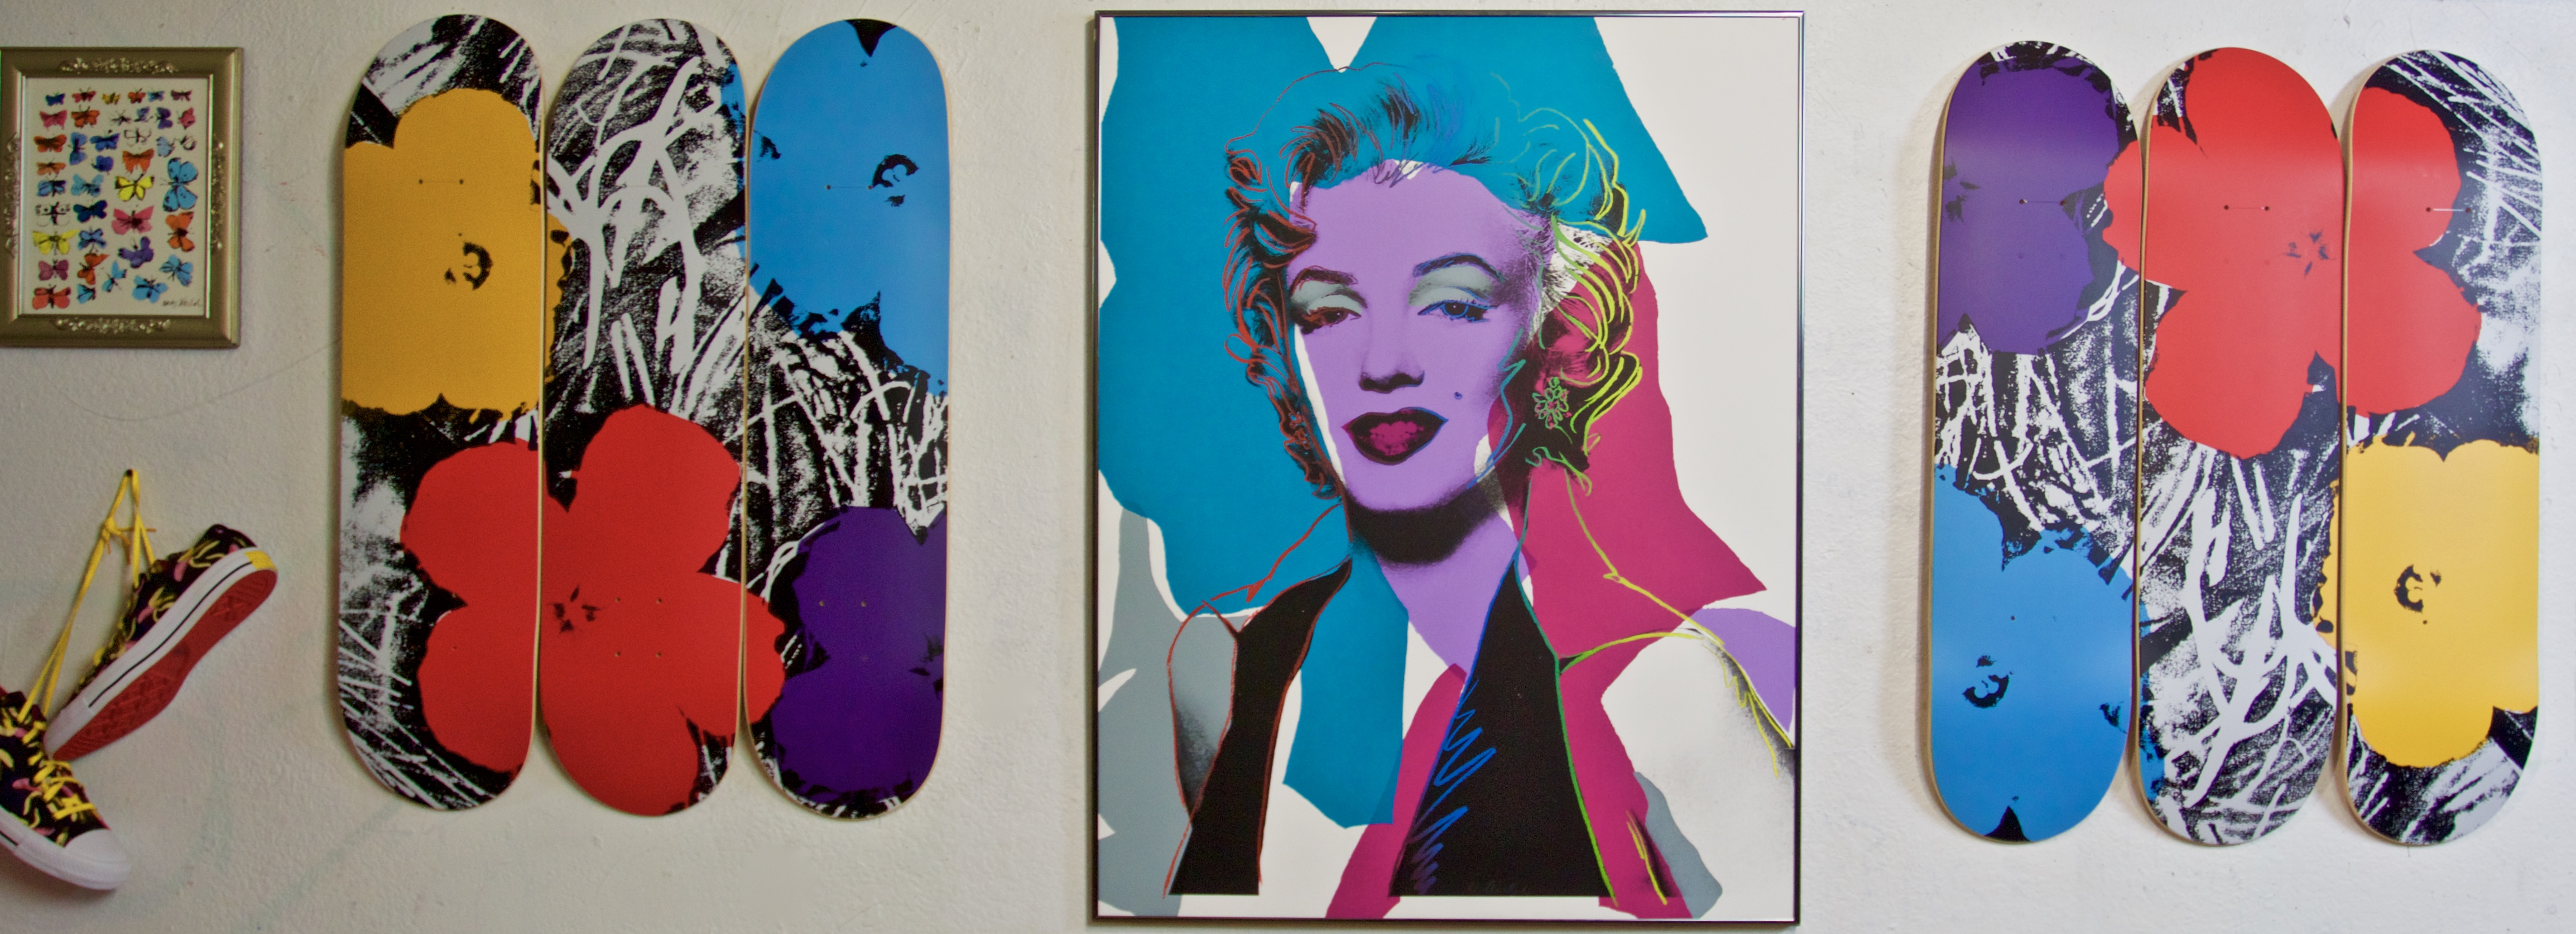 Mr Warhol Skateboards